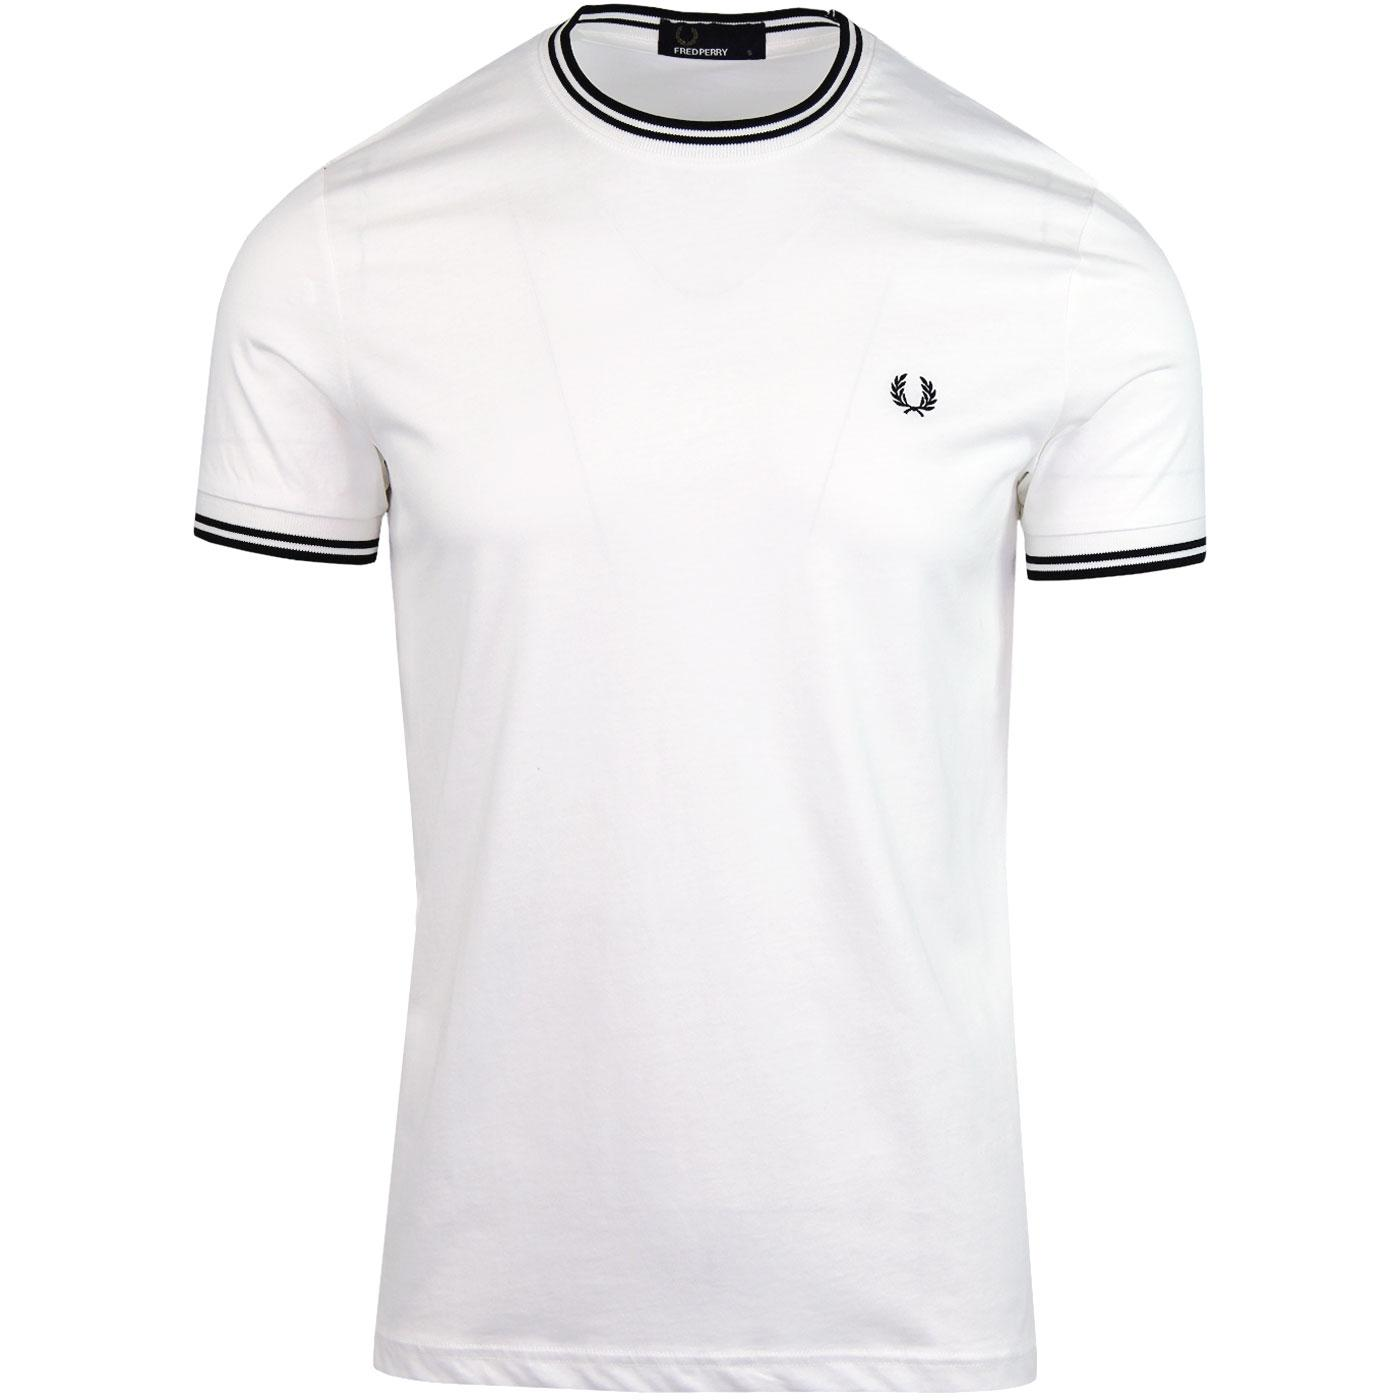 FRED PERRY Retro Mod Twin Tipped Crew T-shirt (SW)